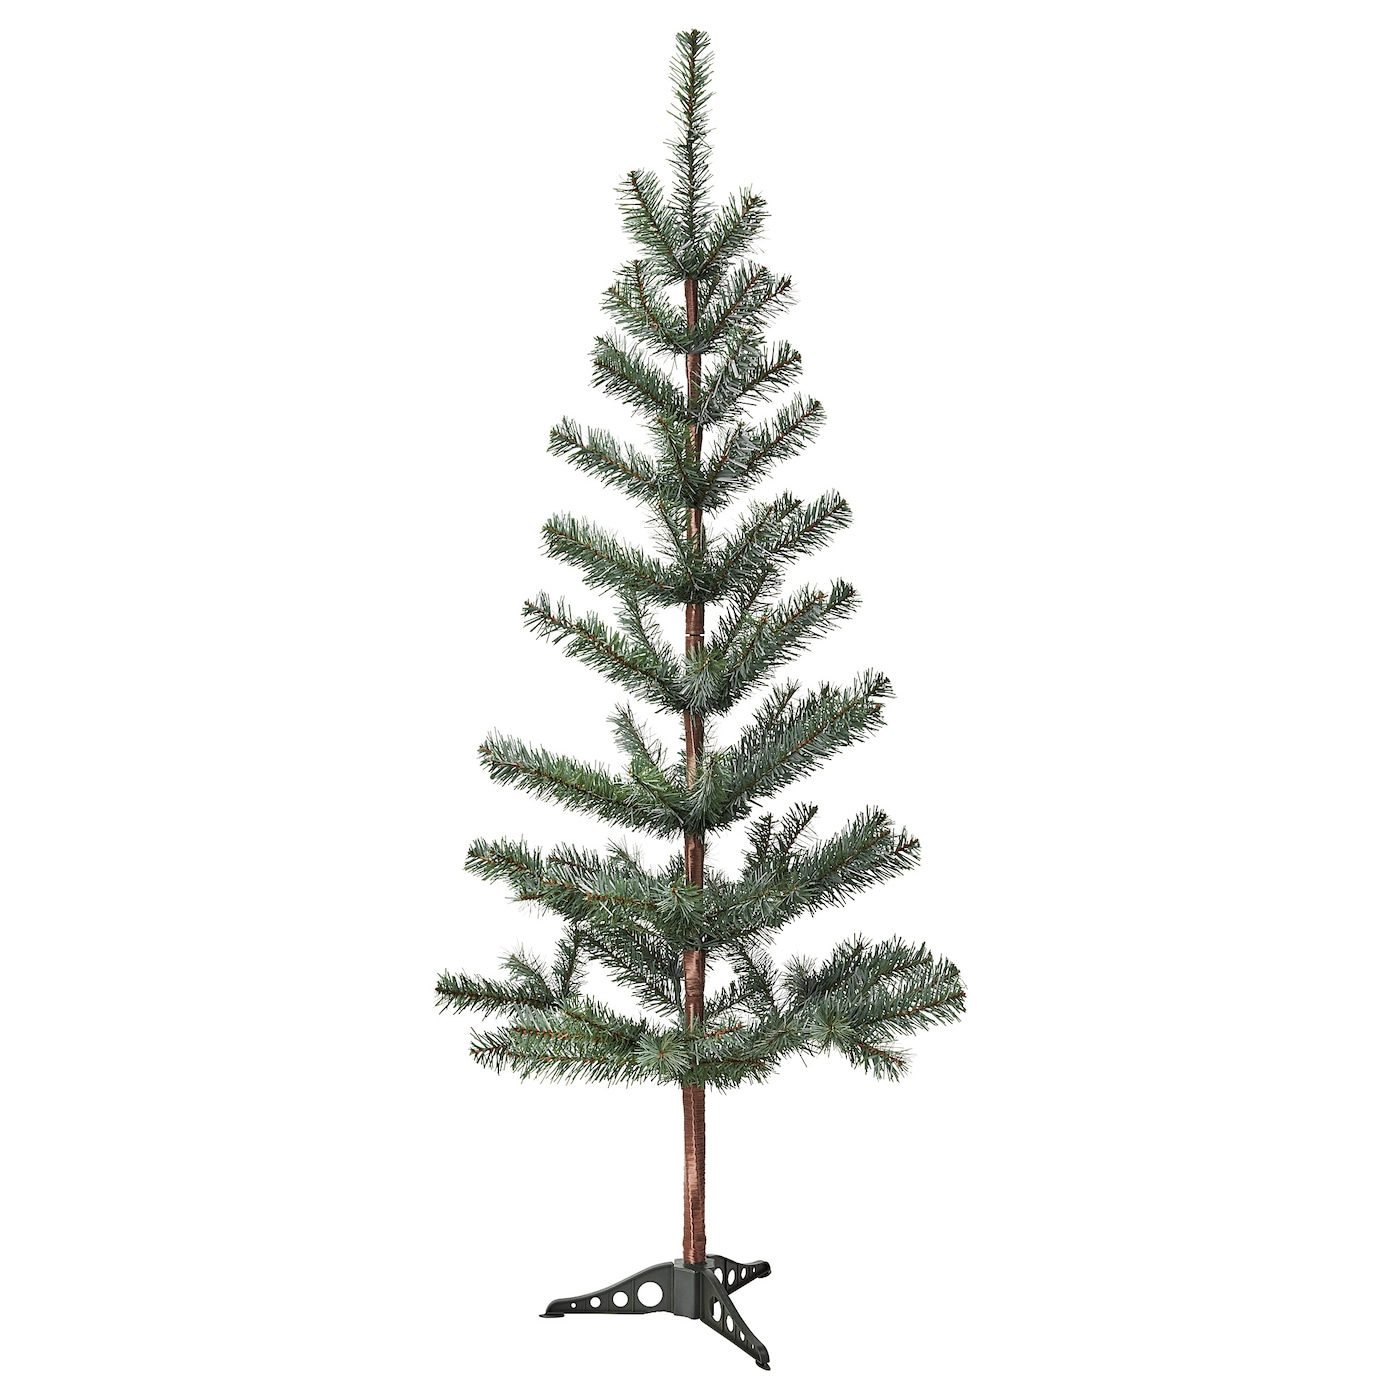 ikea fejka artificial plant a perfect christmas tree if you dont want to clean